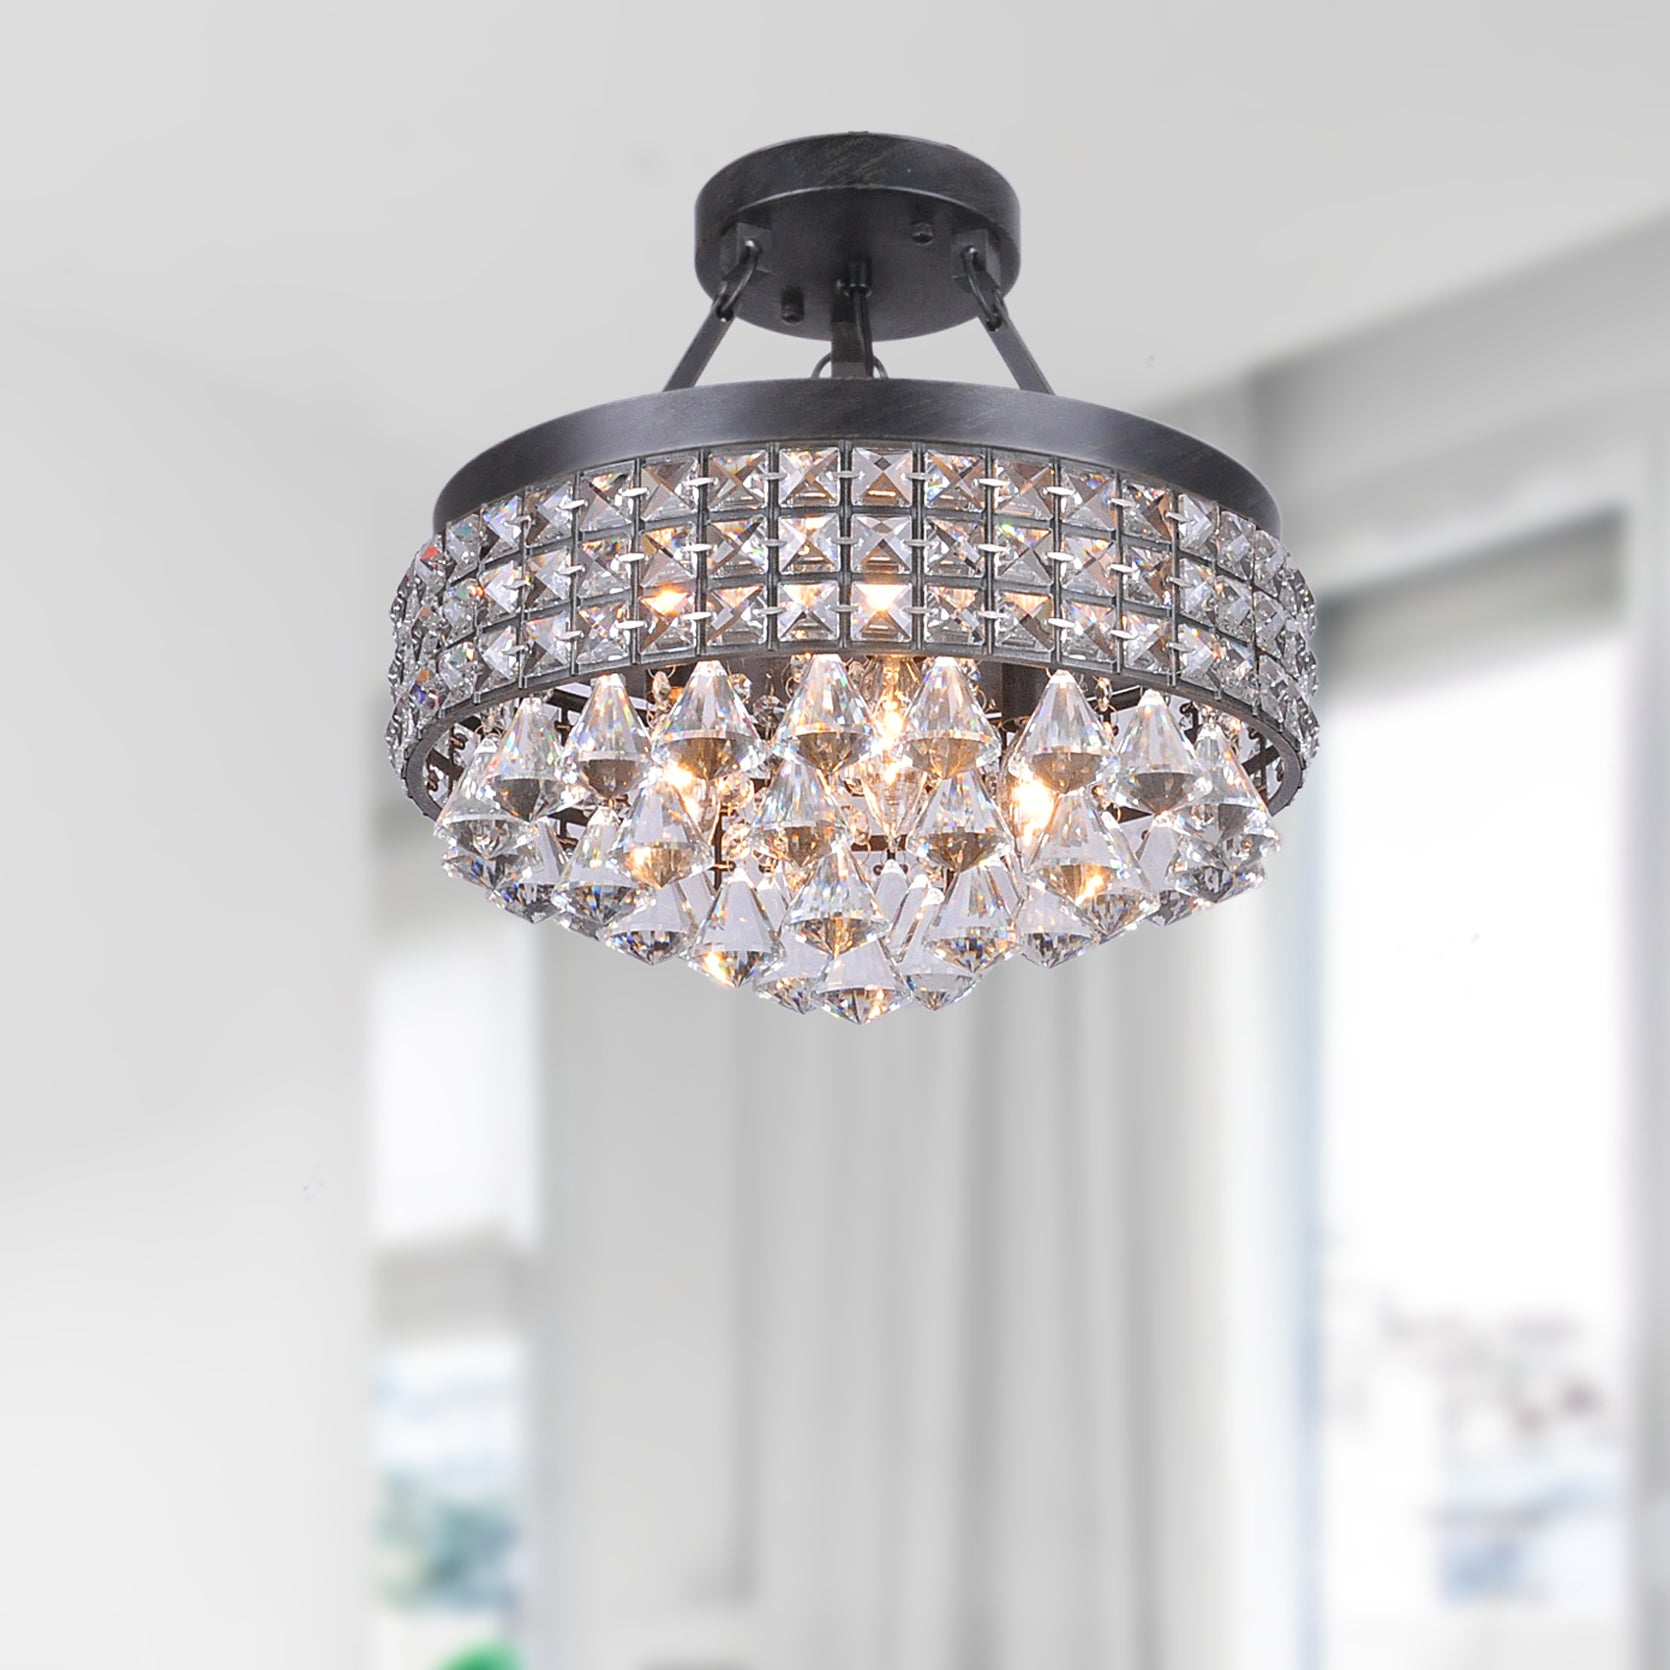 Antonia 4 light Crystal Semi flush Mount Chandelier with Antique